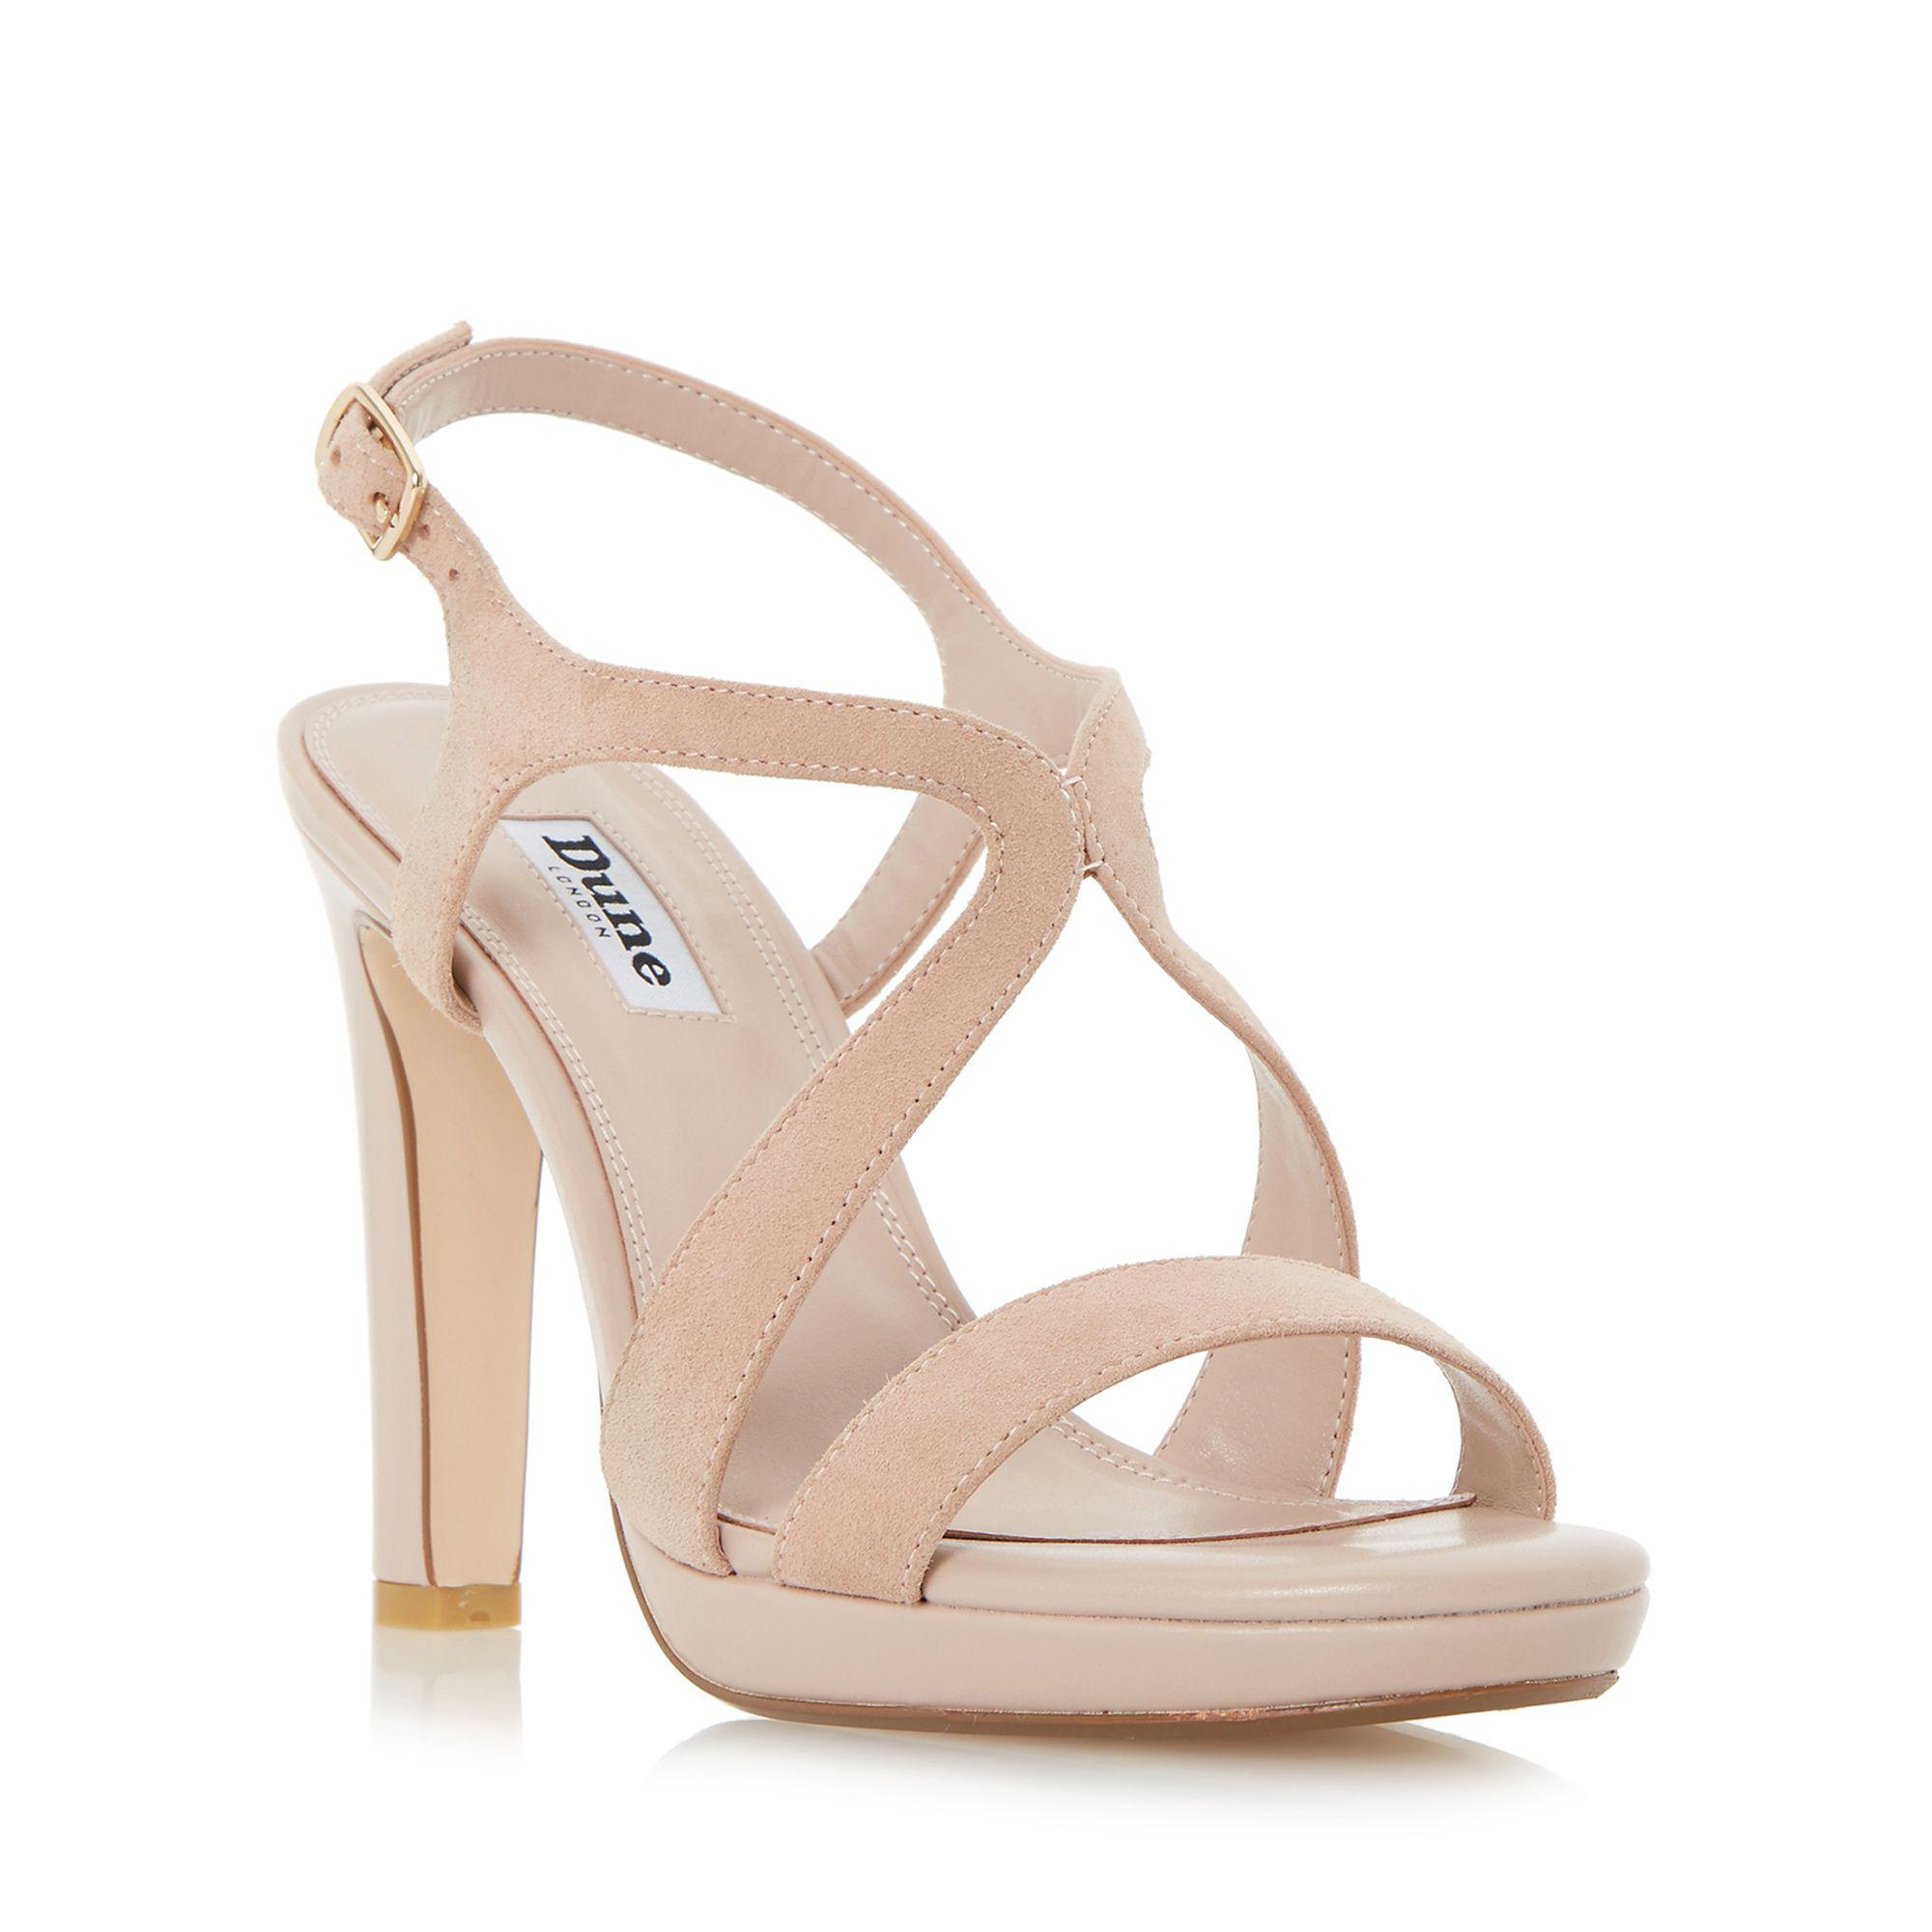 8e09fb1a517 Dune Light Pink  maya  Strap Detail Slim Platform Sandals in Pink - Lyst